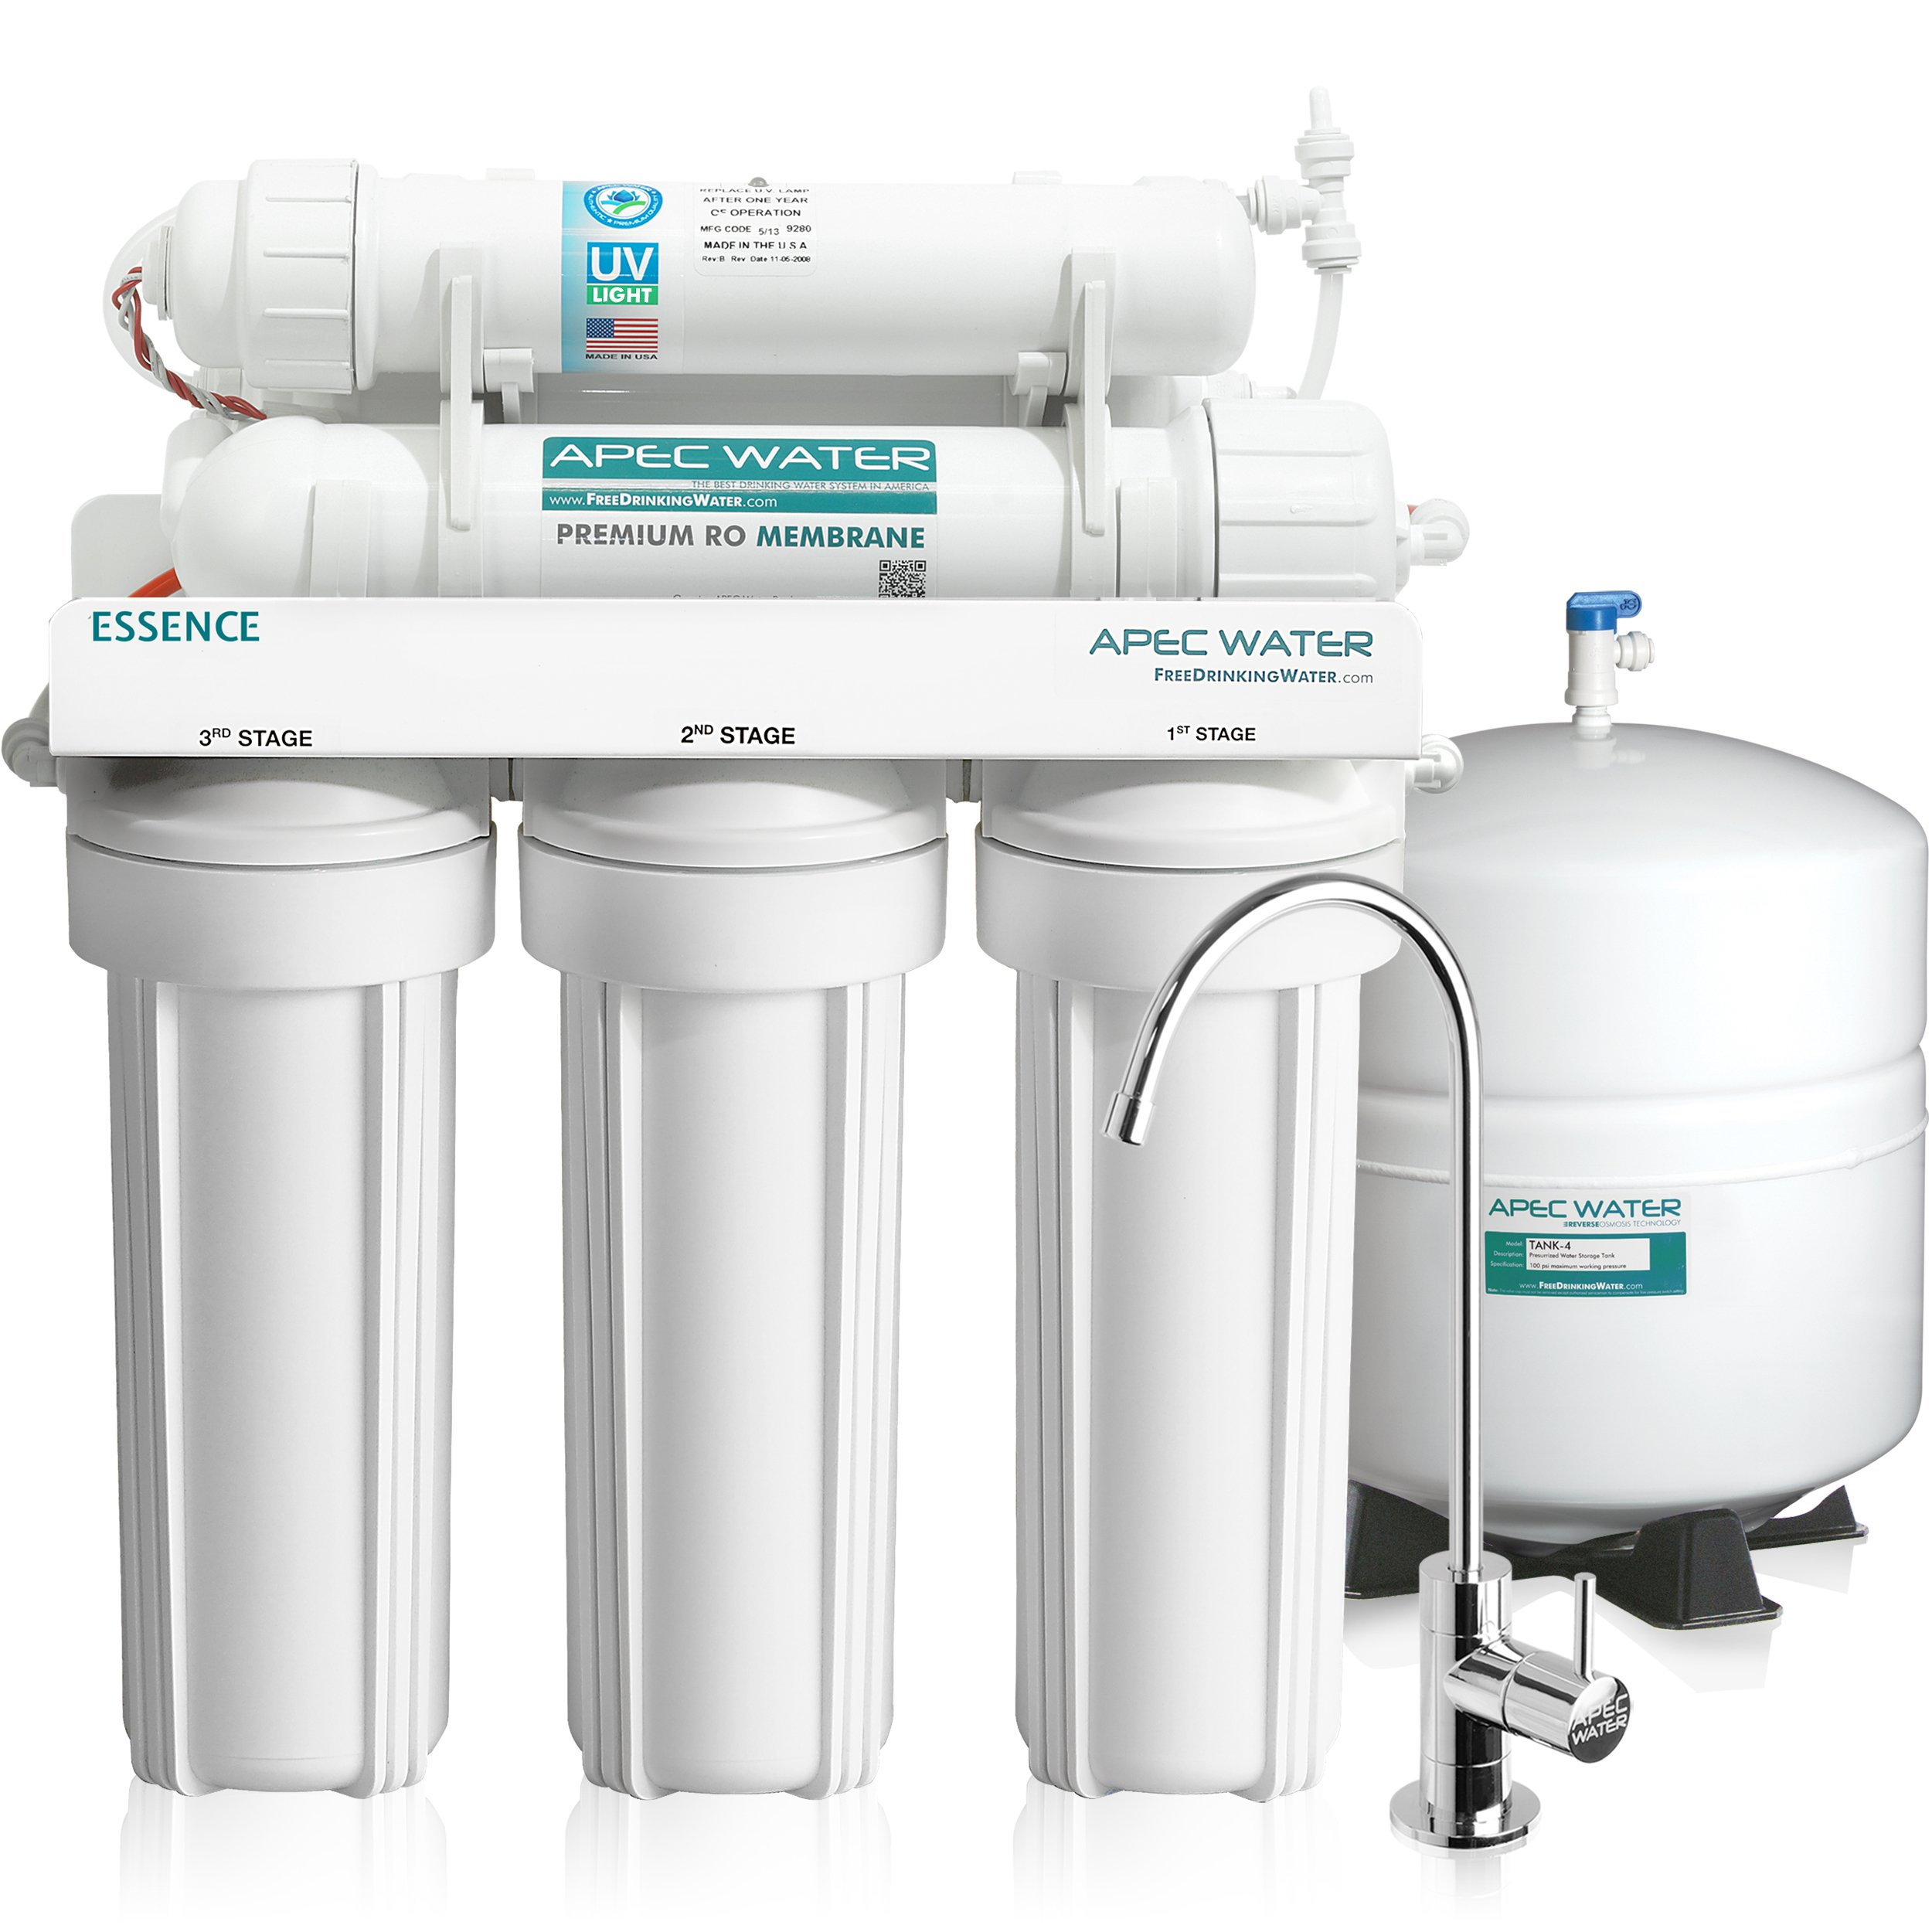 APEC Top Tier UV Ultra-Violet Sterilizer 75 GPD 6 Stage Ultra Safe Reverse Osmosis Drinking Water Filter System (ESSENCE ROES-UV75)